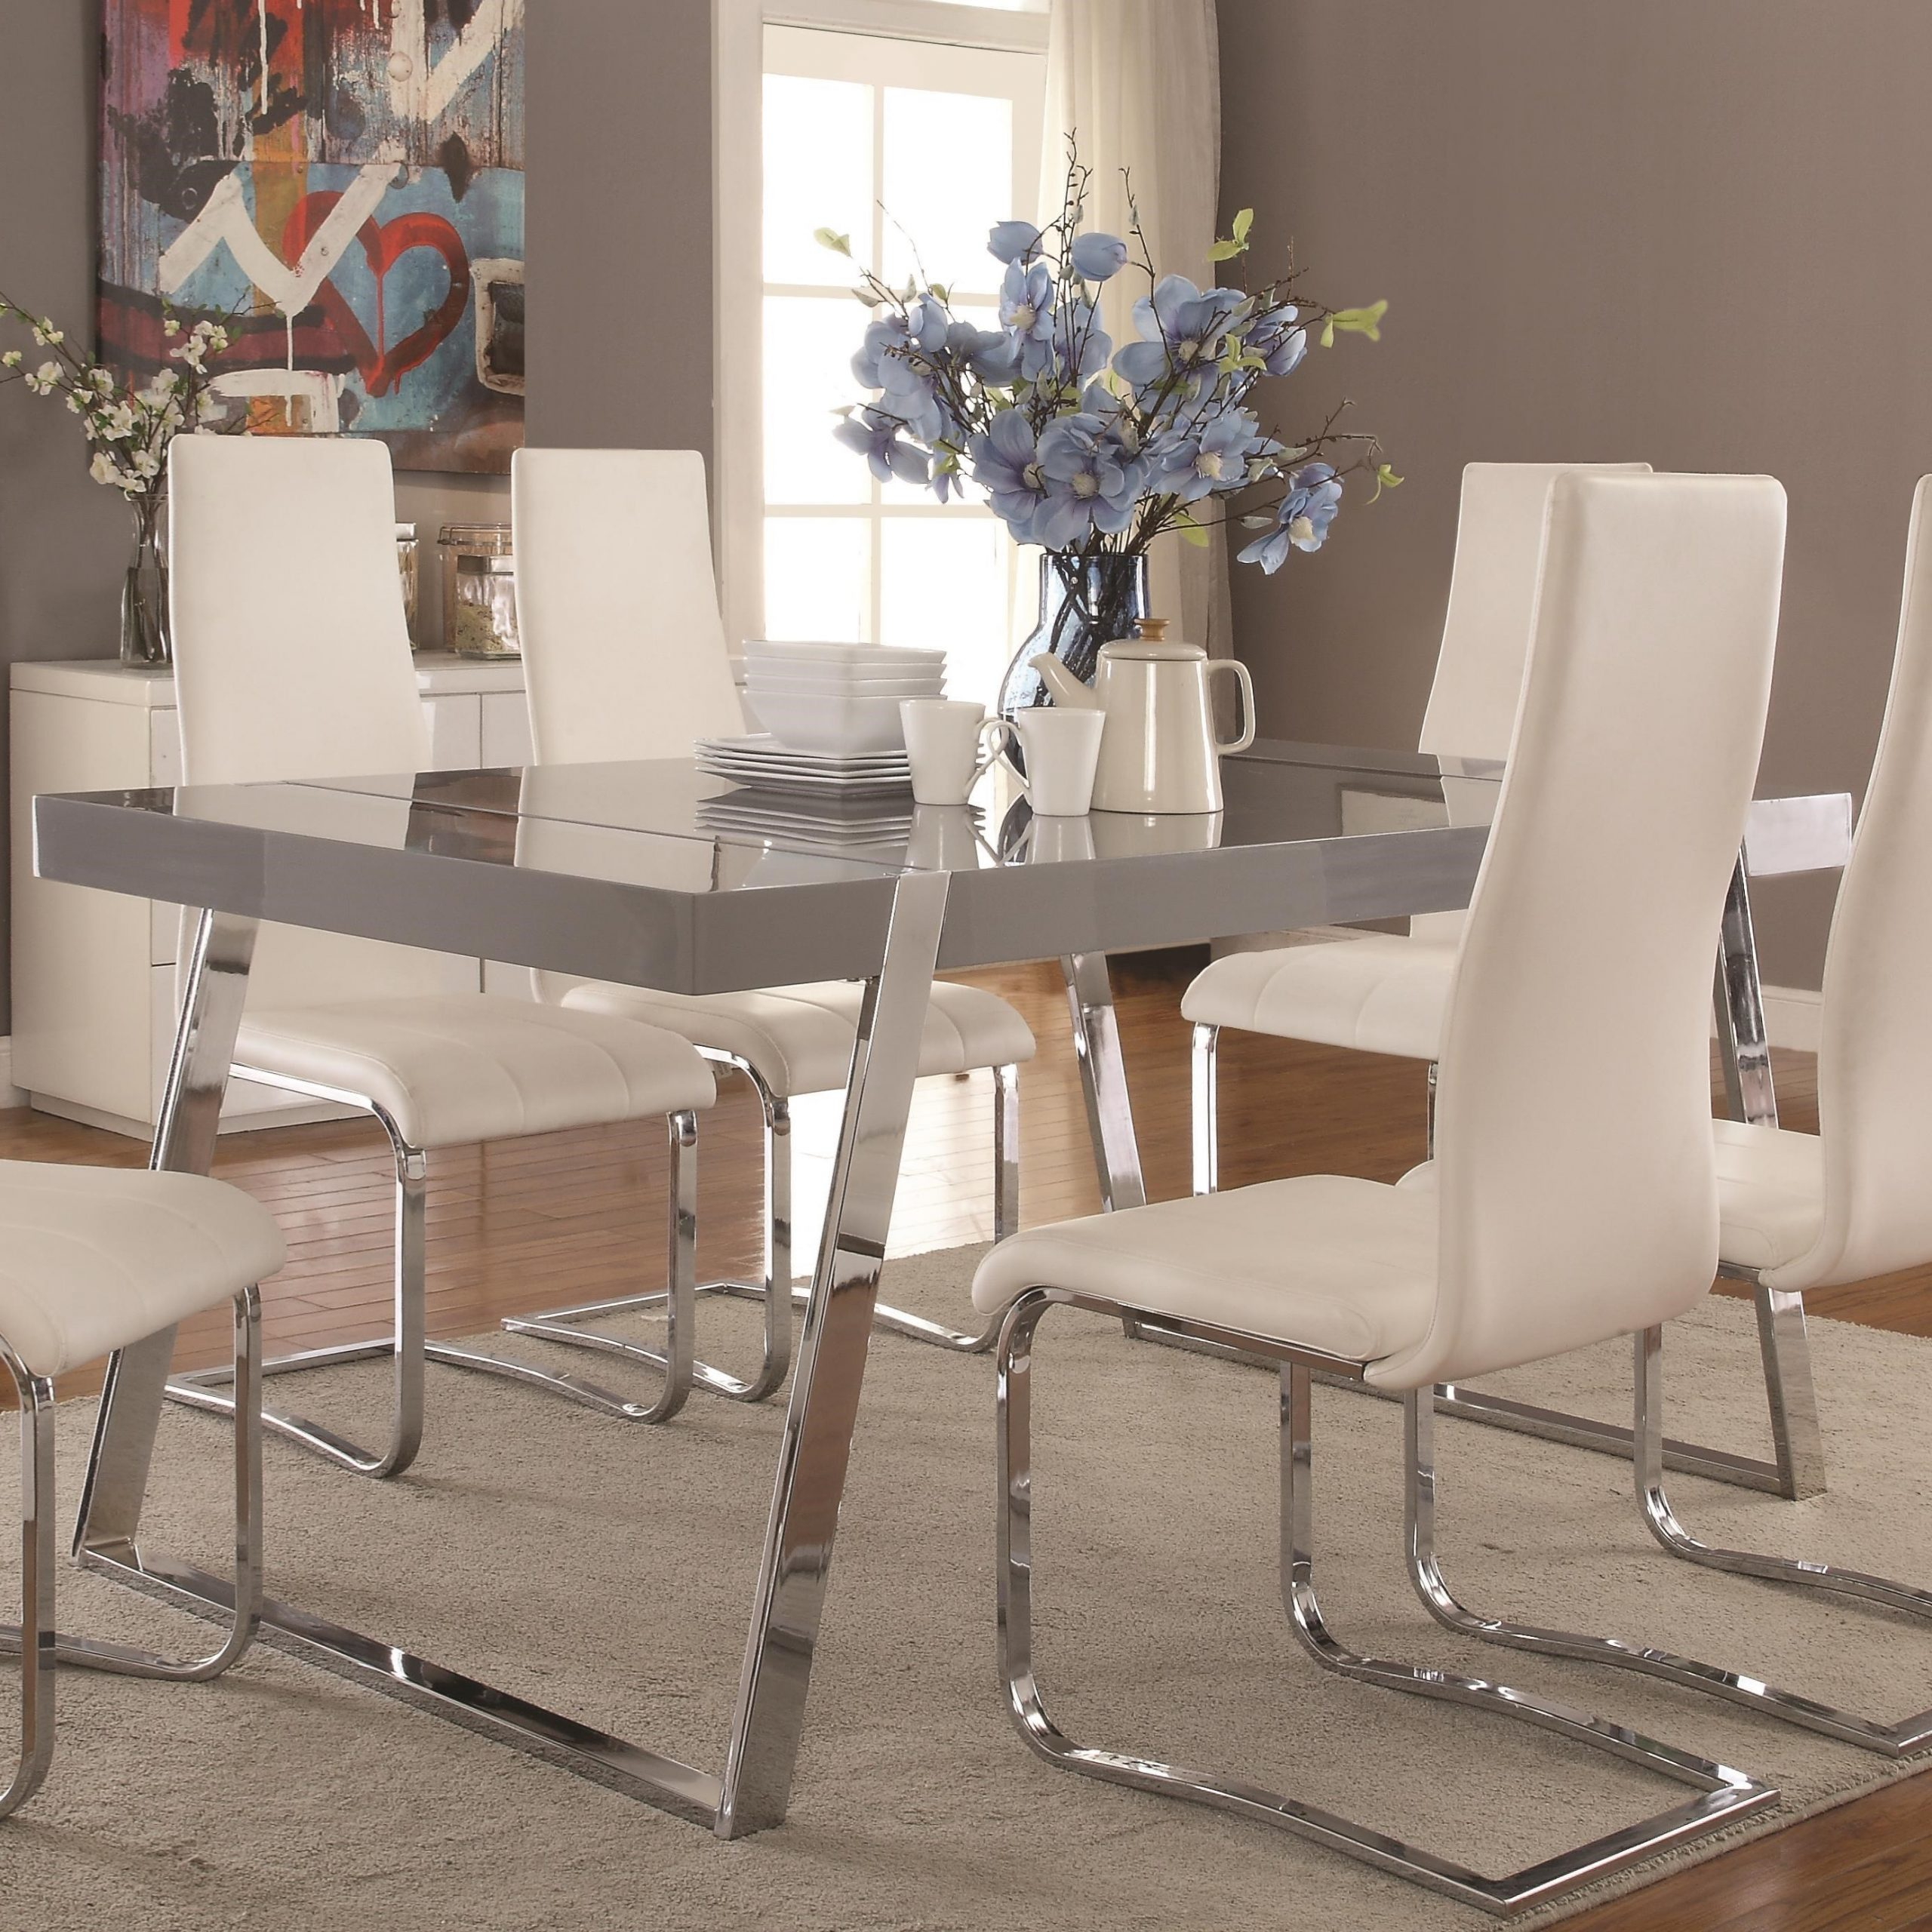 Newest Giovanni Contemporary Rectangular Dining Table Intended For Contemporary Rectangular Dining Tables (View 13 of 25)